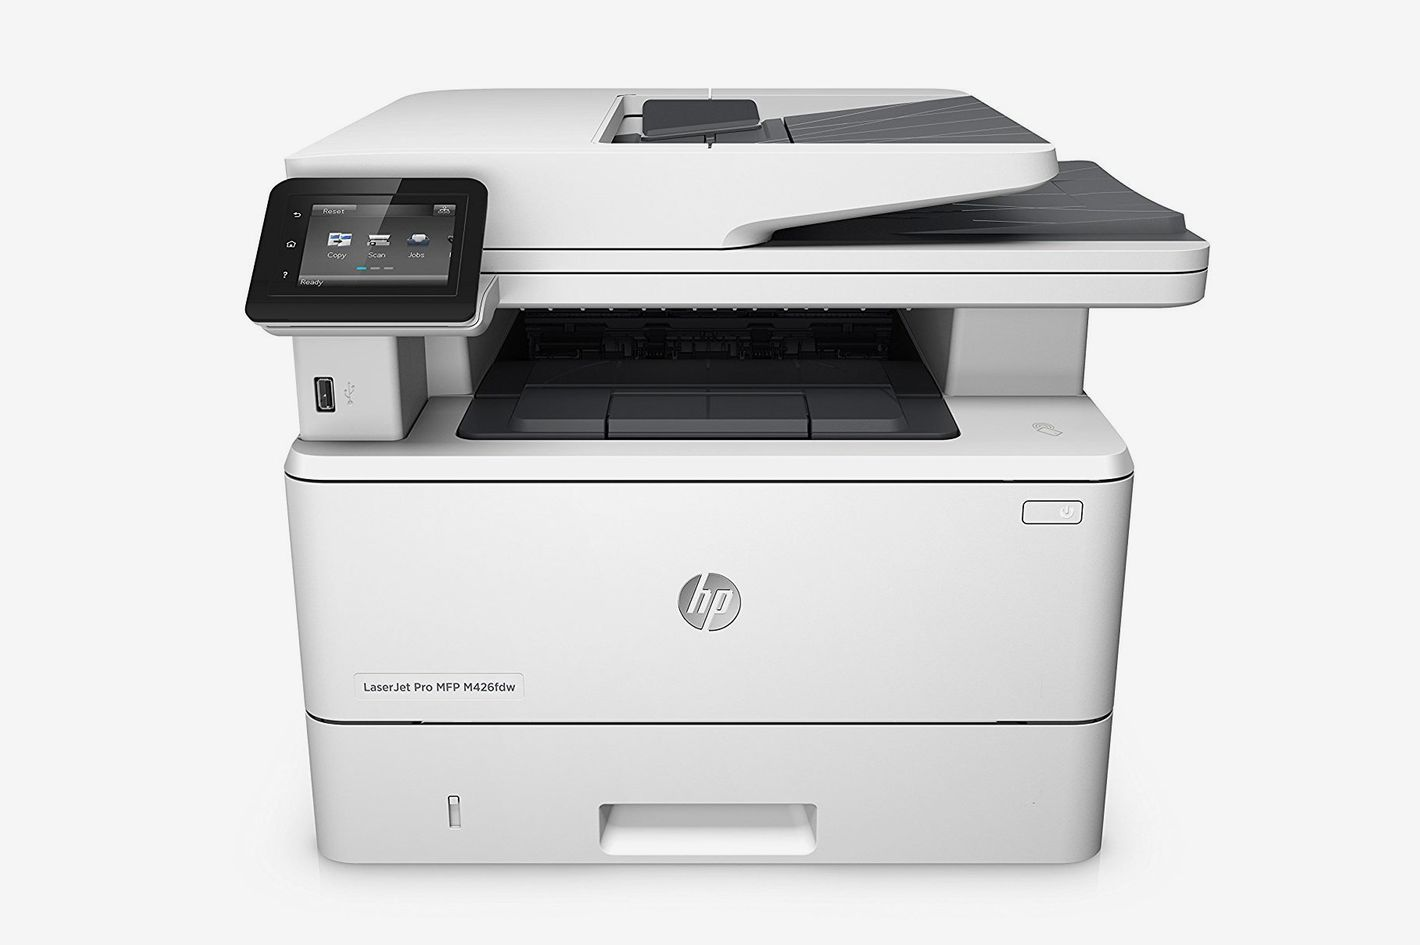 HP Laserjet Pro M426FDW Multifunction Wireless Laser Printer with Duplex Printing